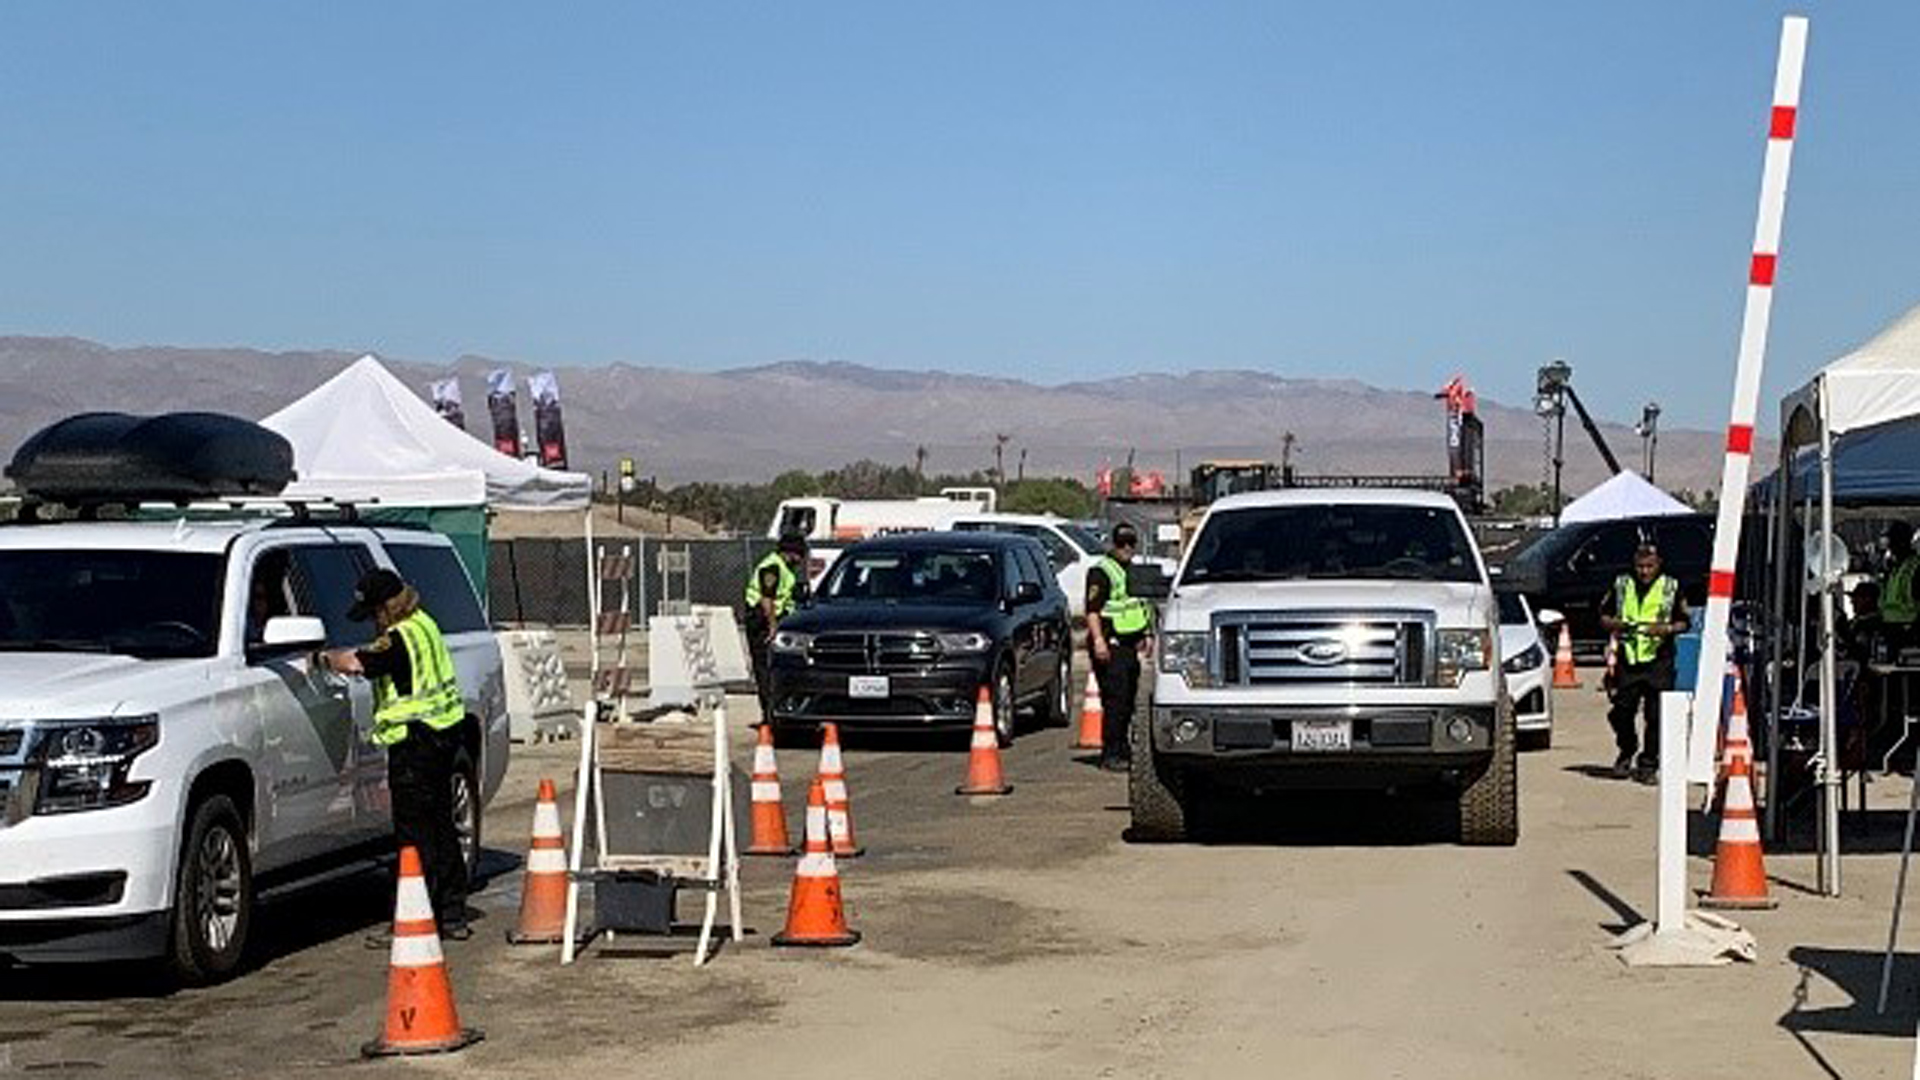 Officials cracked down on drivers fraudulently using disabled parking placards at the Coachella and Stagecoach concerts in Indio in April. (Credit: California Department of Motor Vehicles)